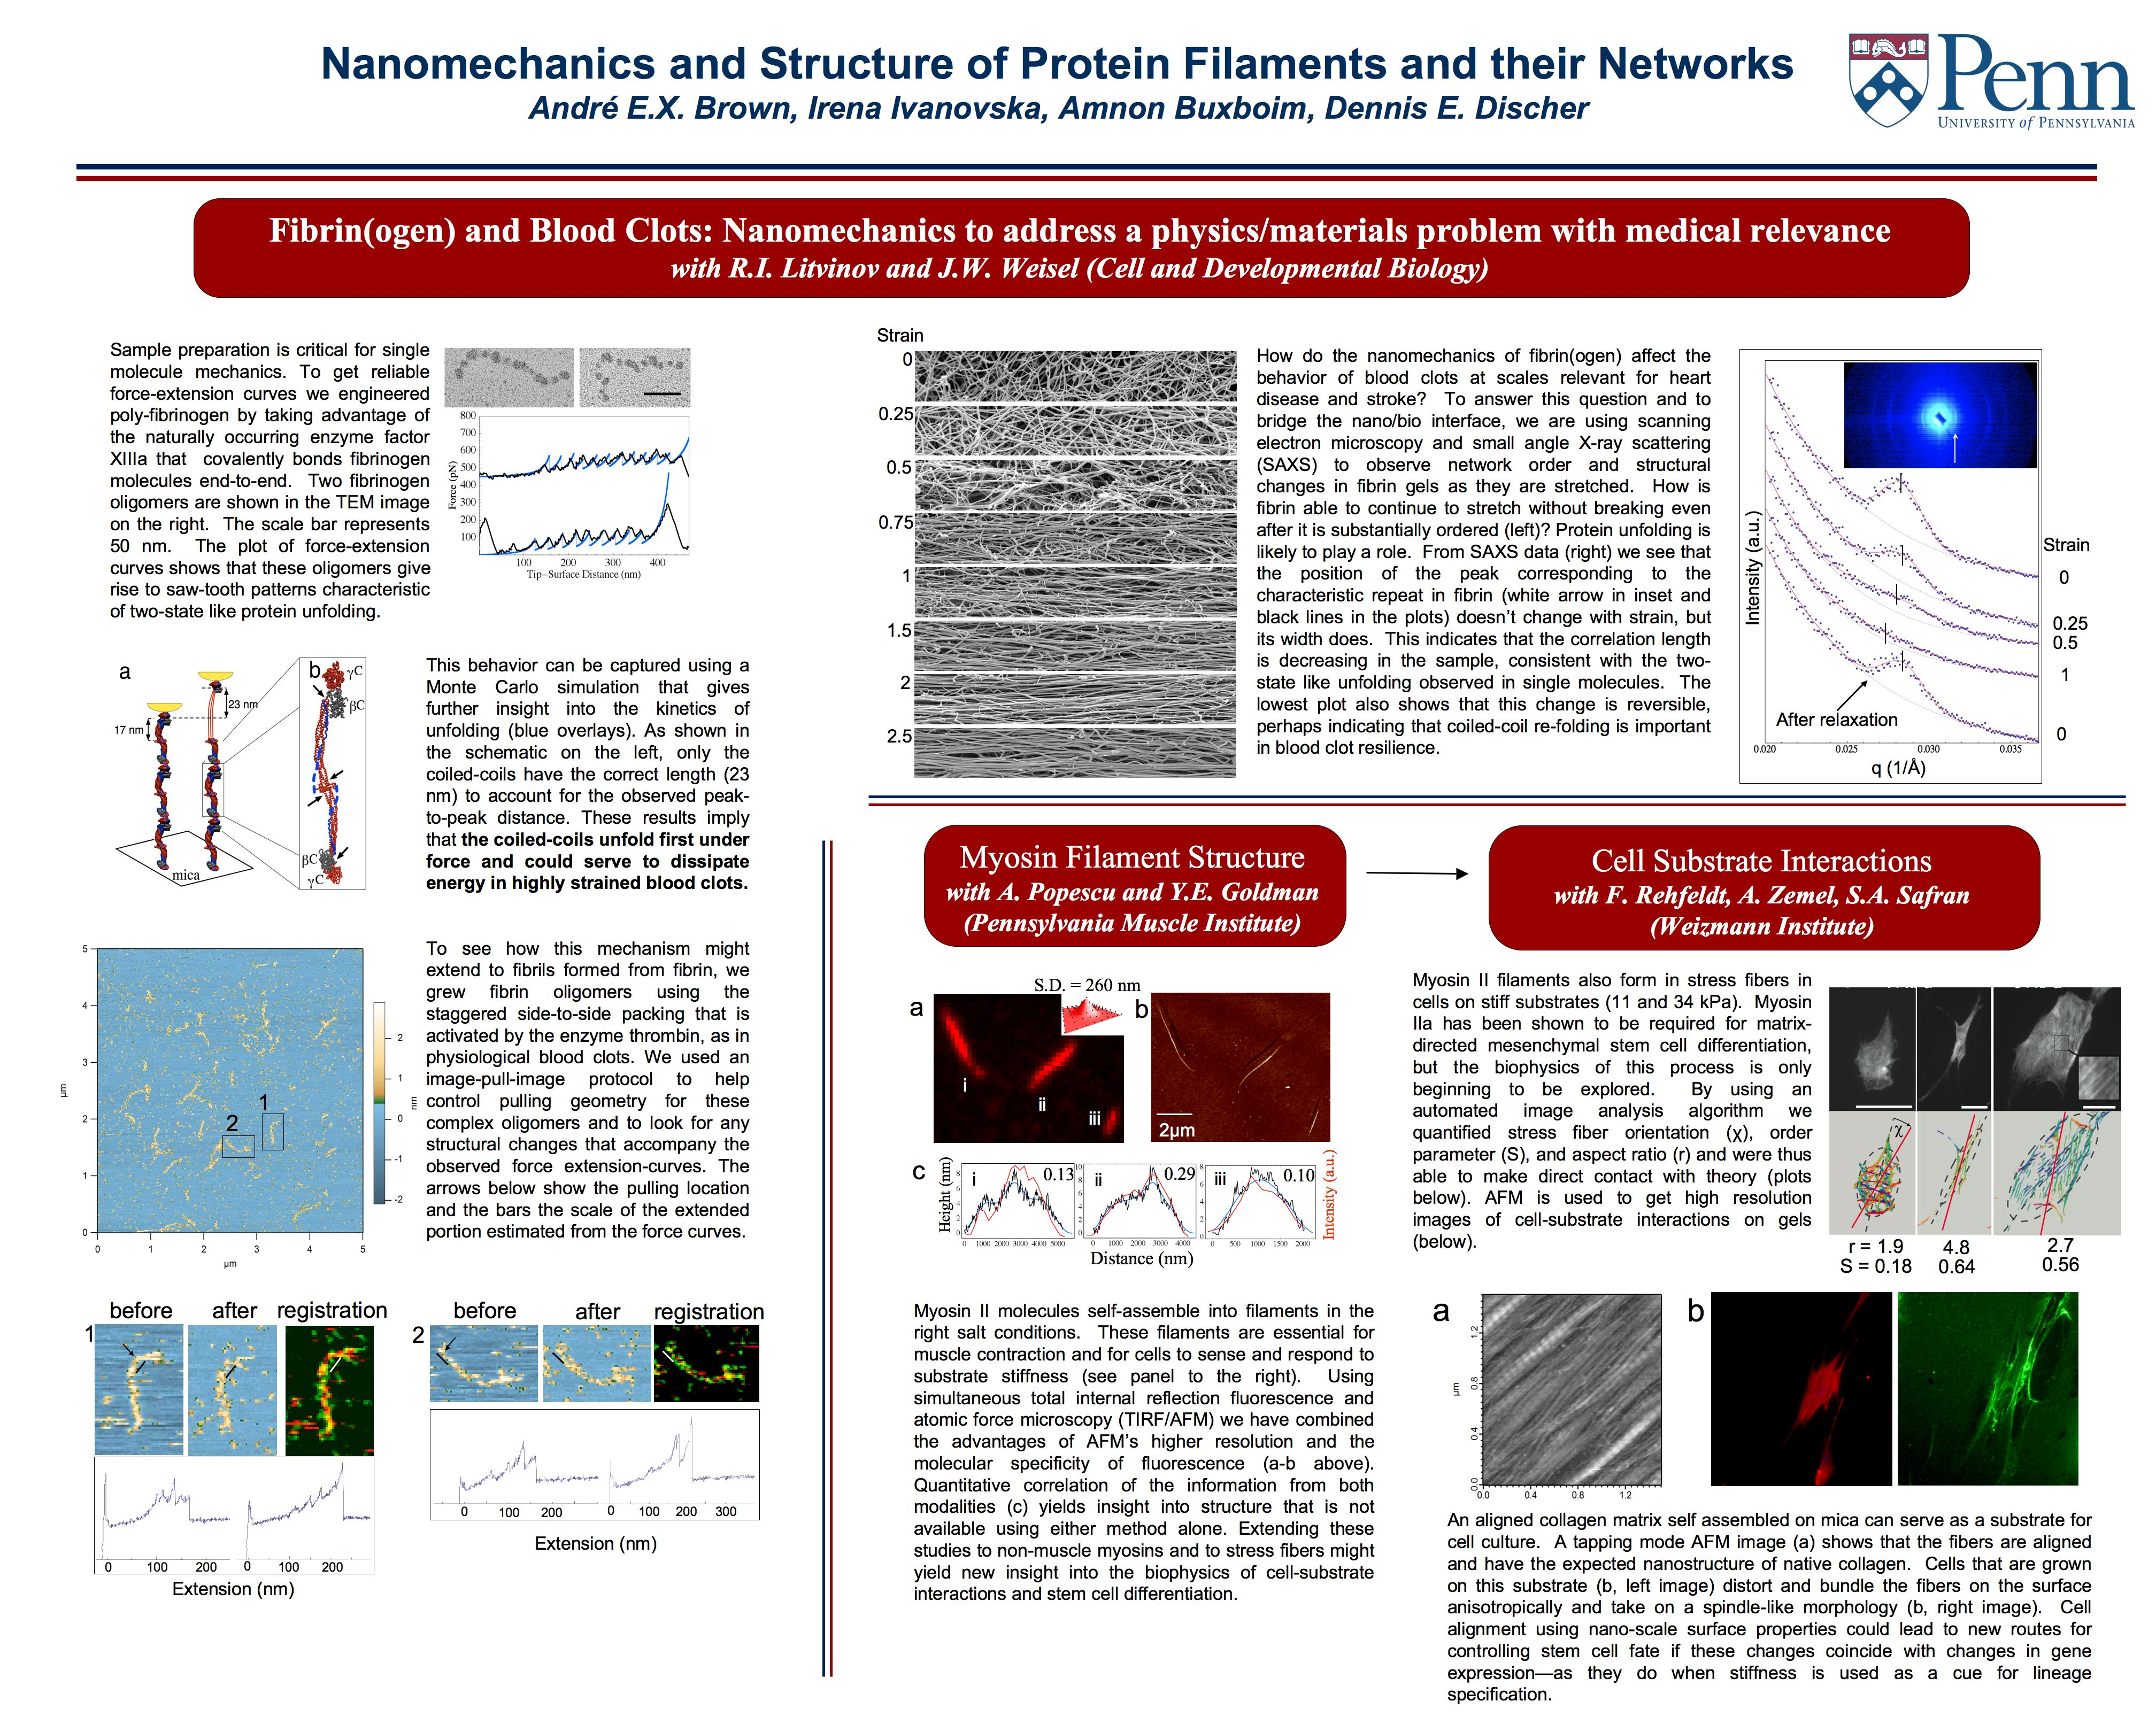 upenn research studies